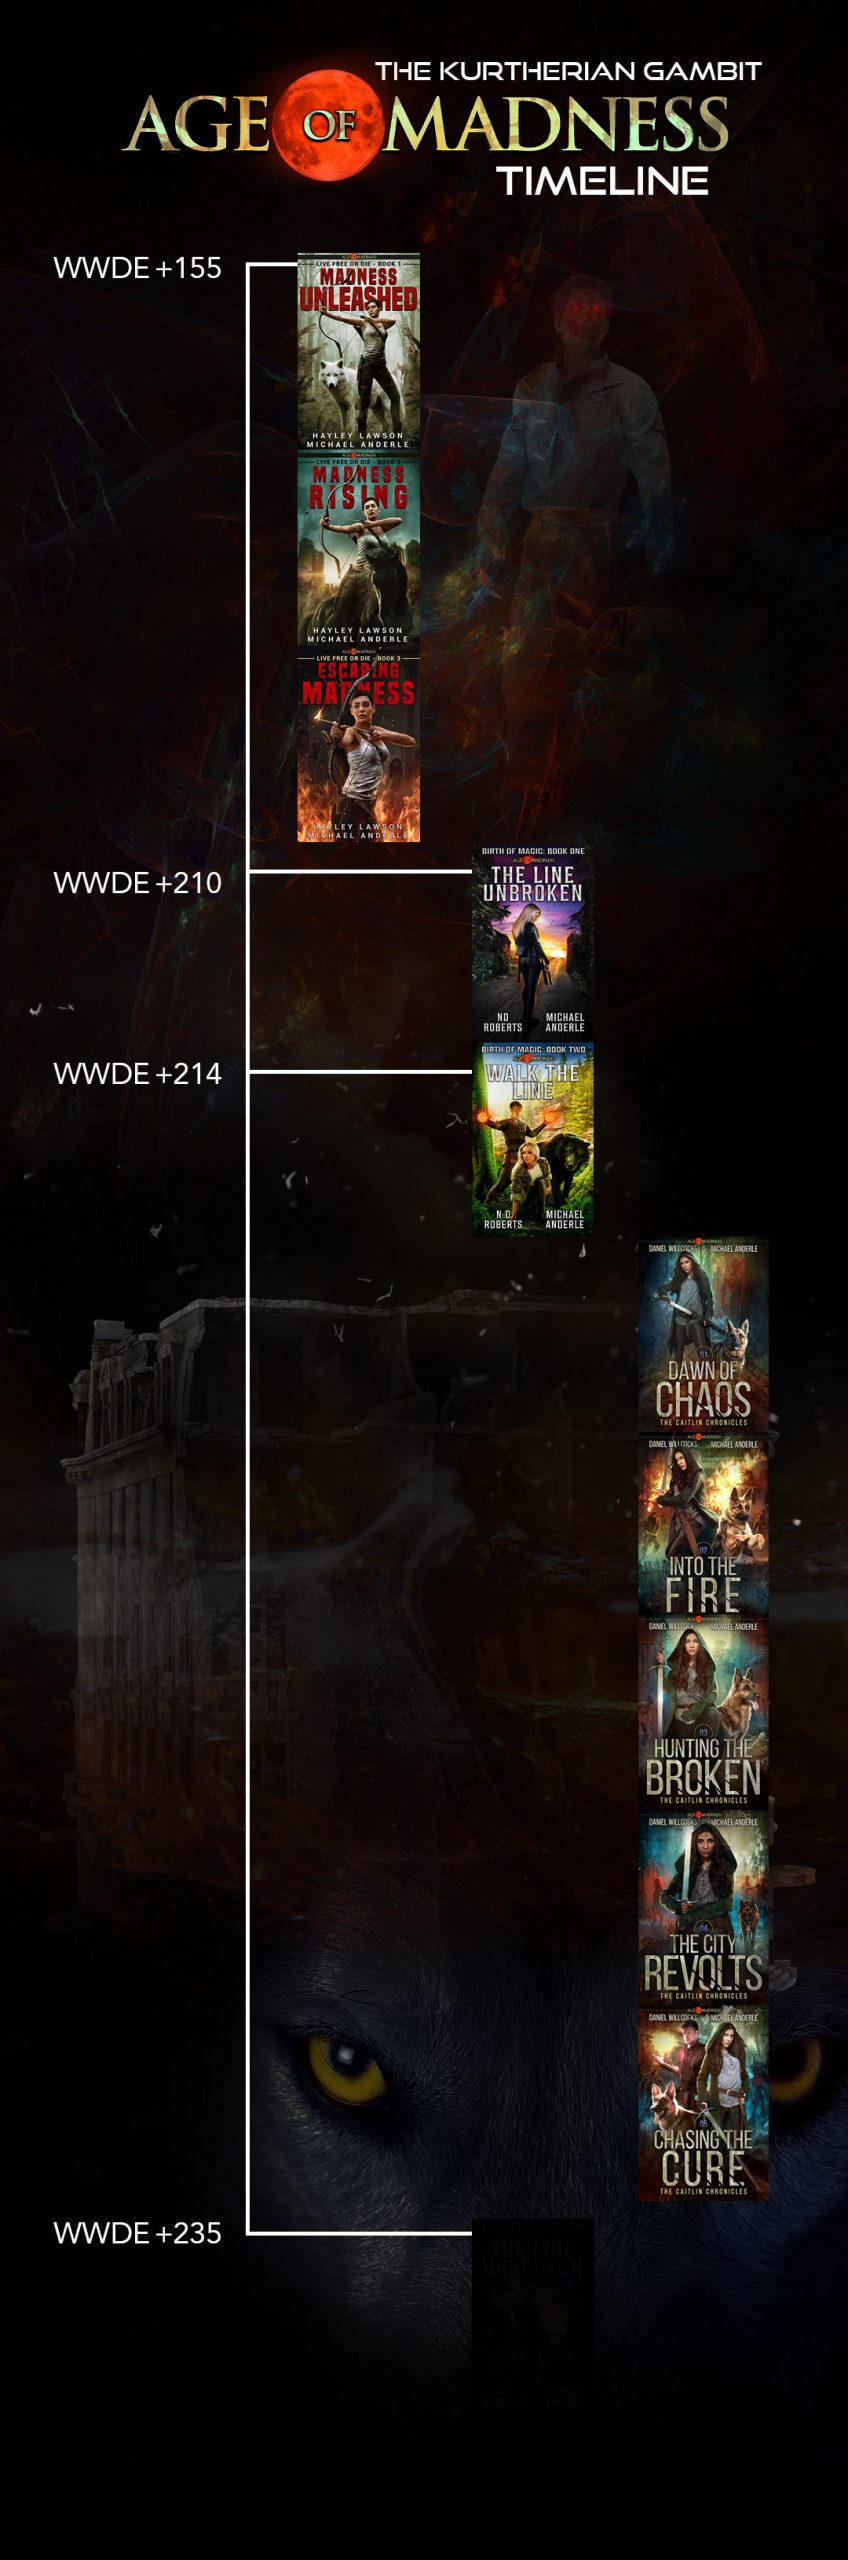 Age of Madness Timeline